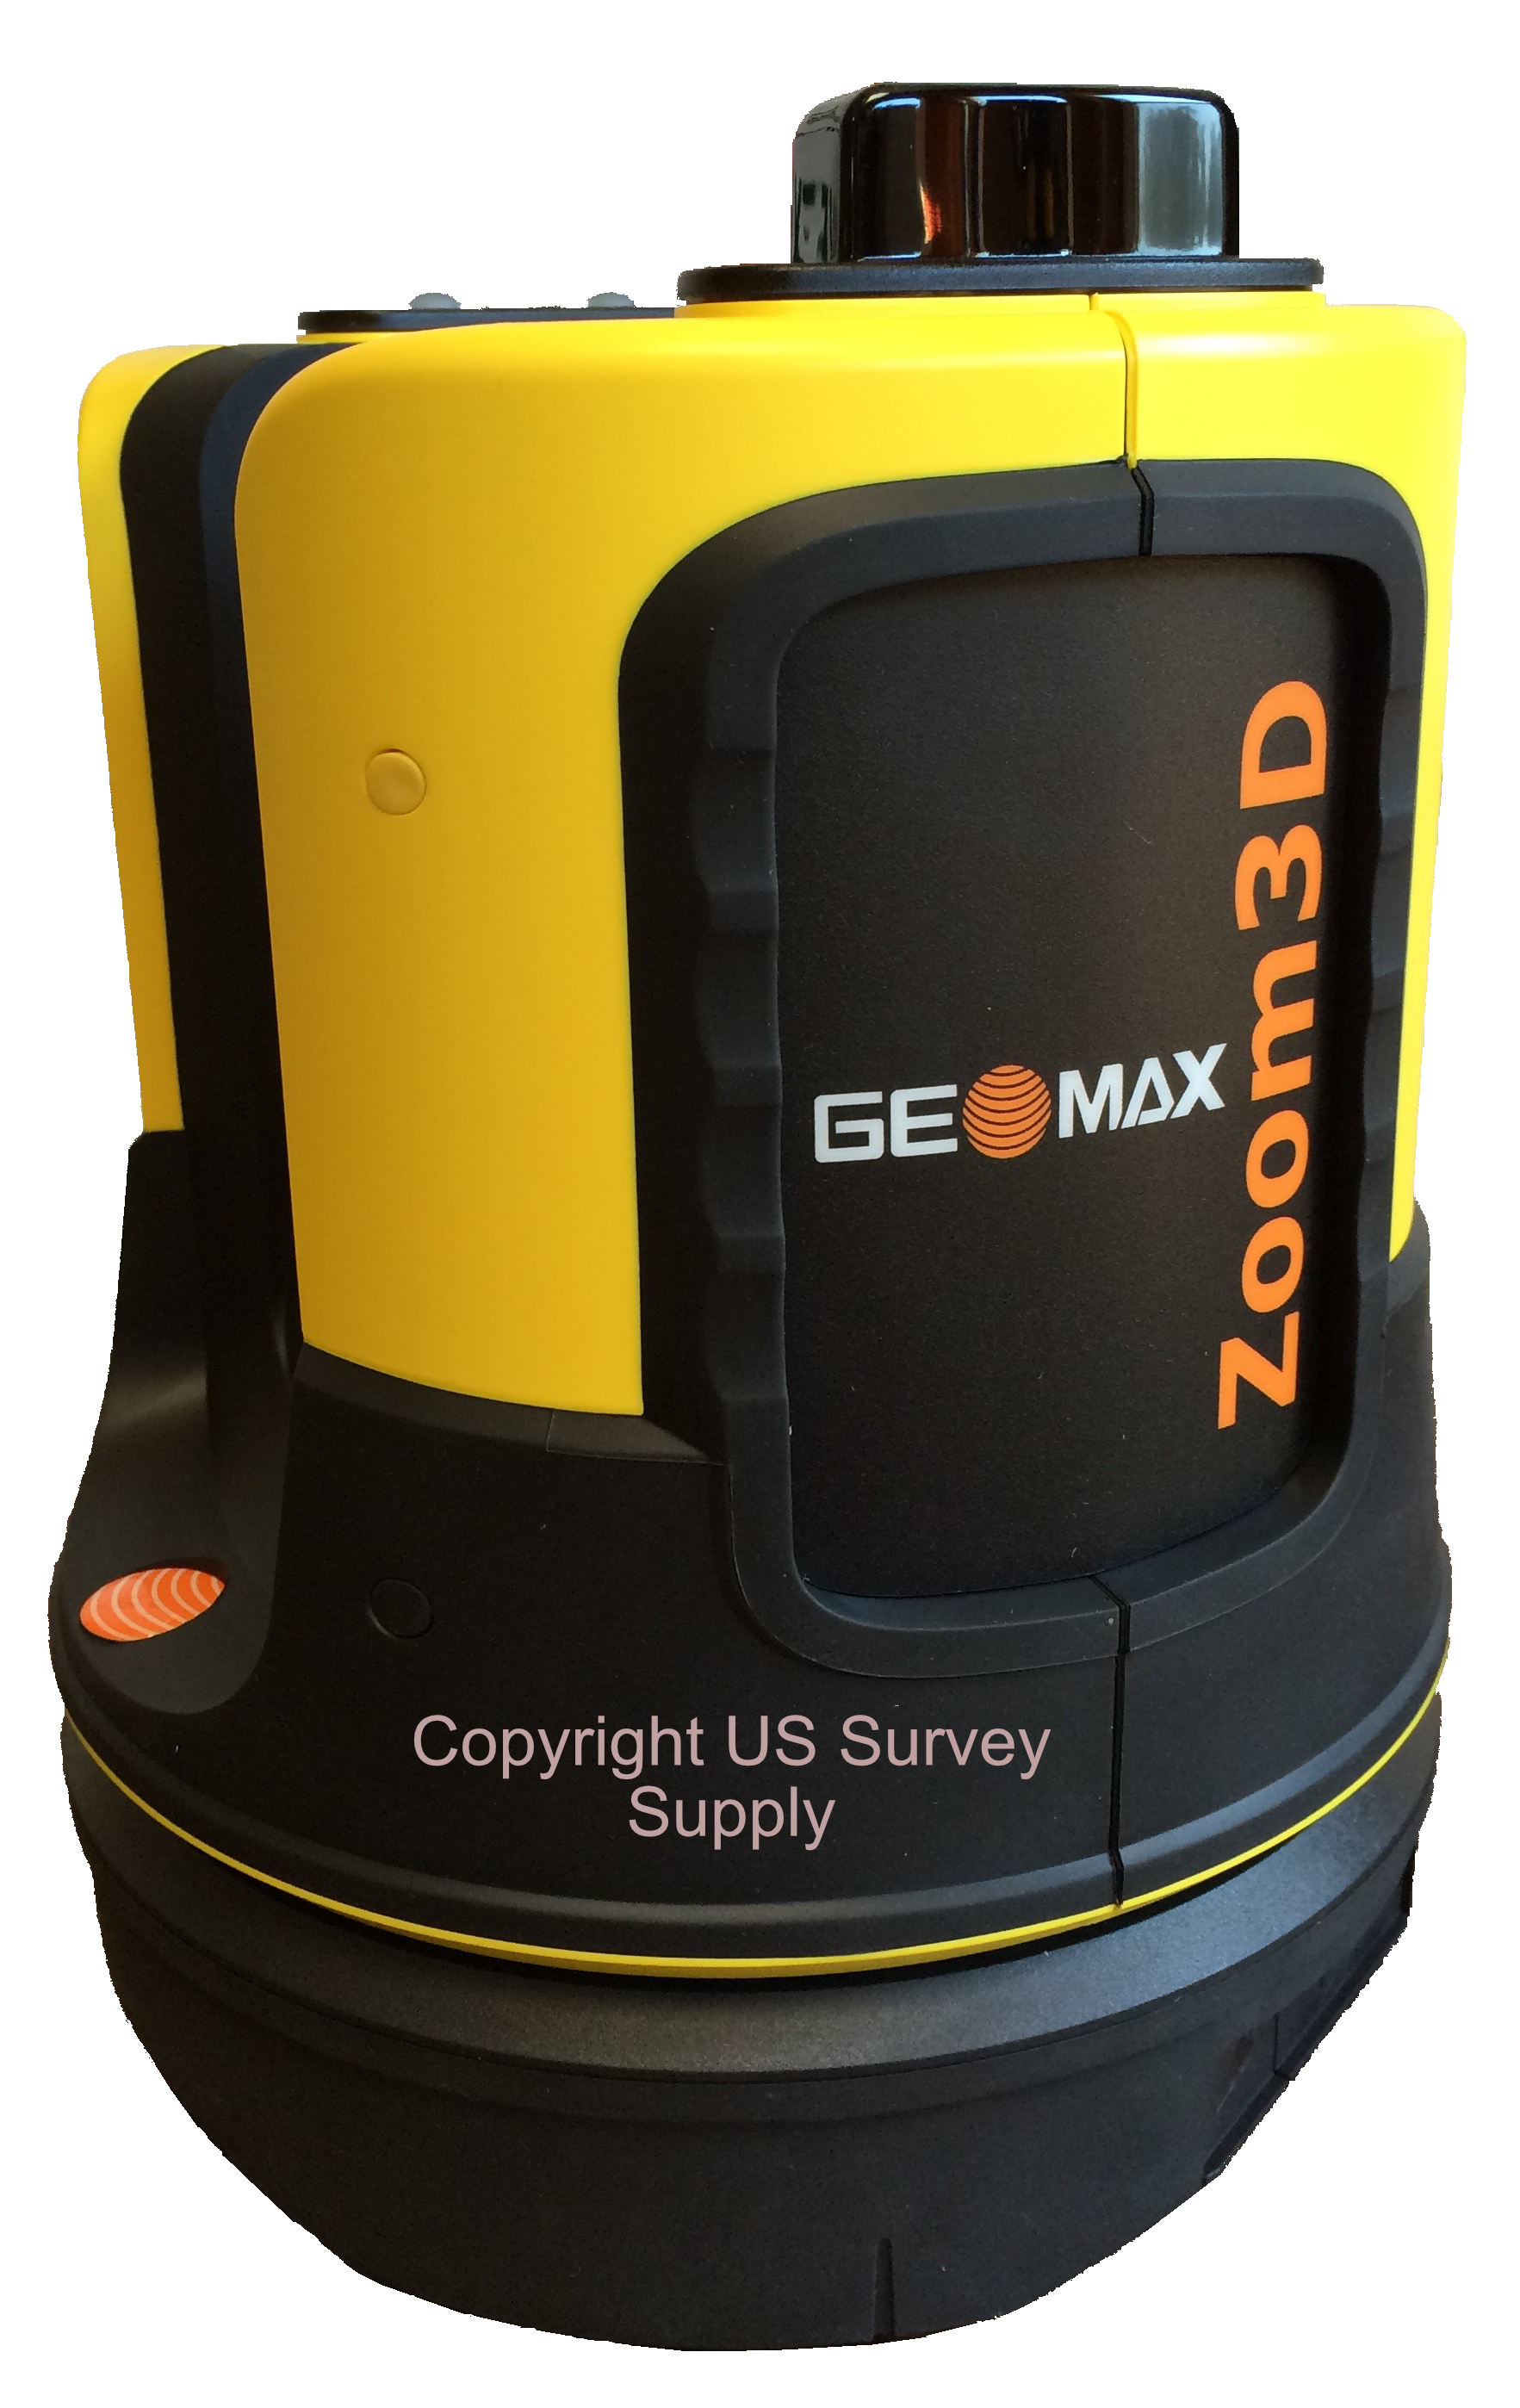 Geomax Zoom3D MicroRobotic Station